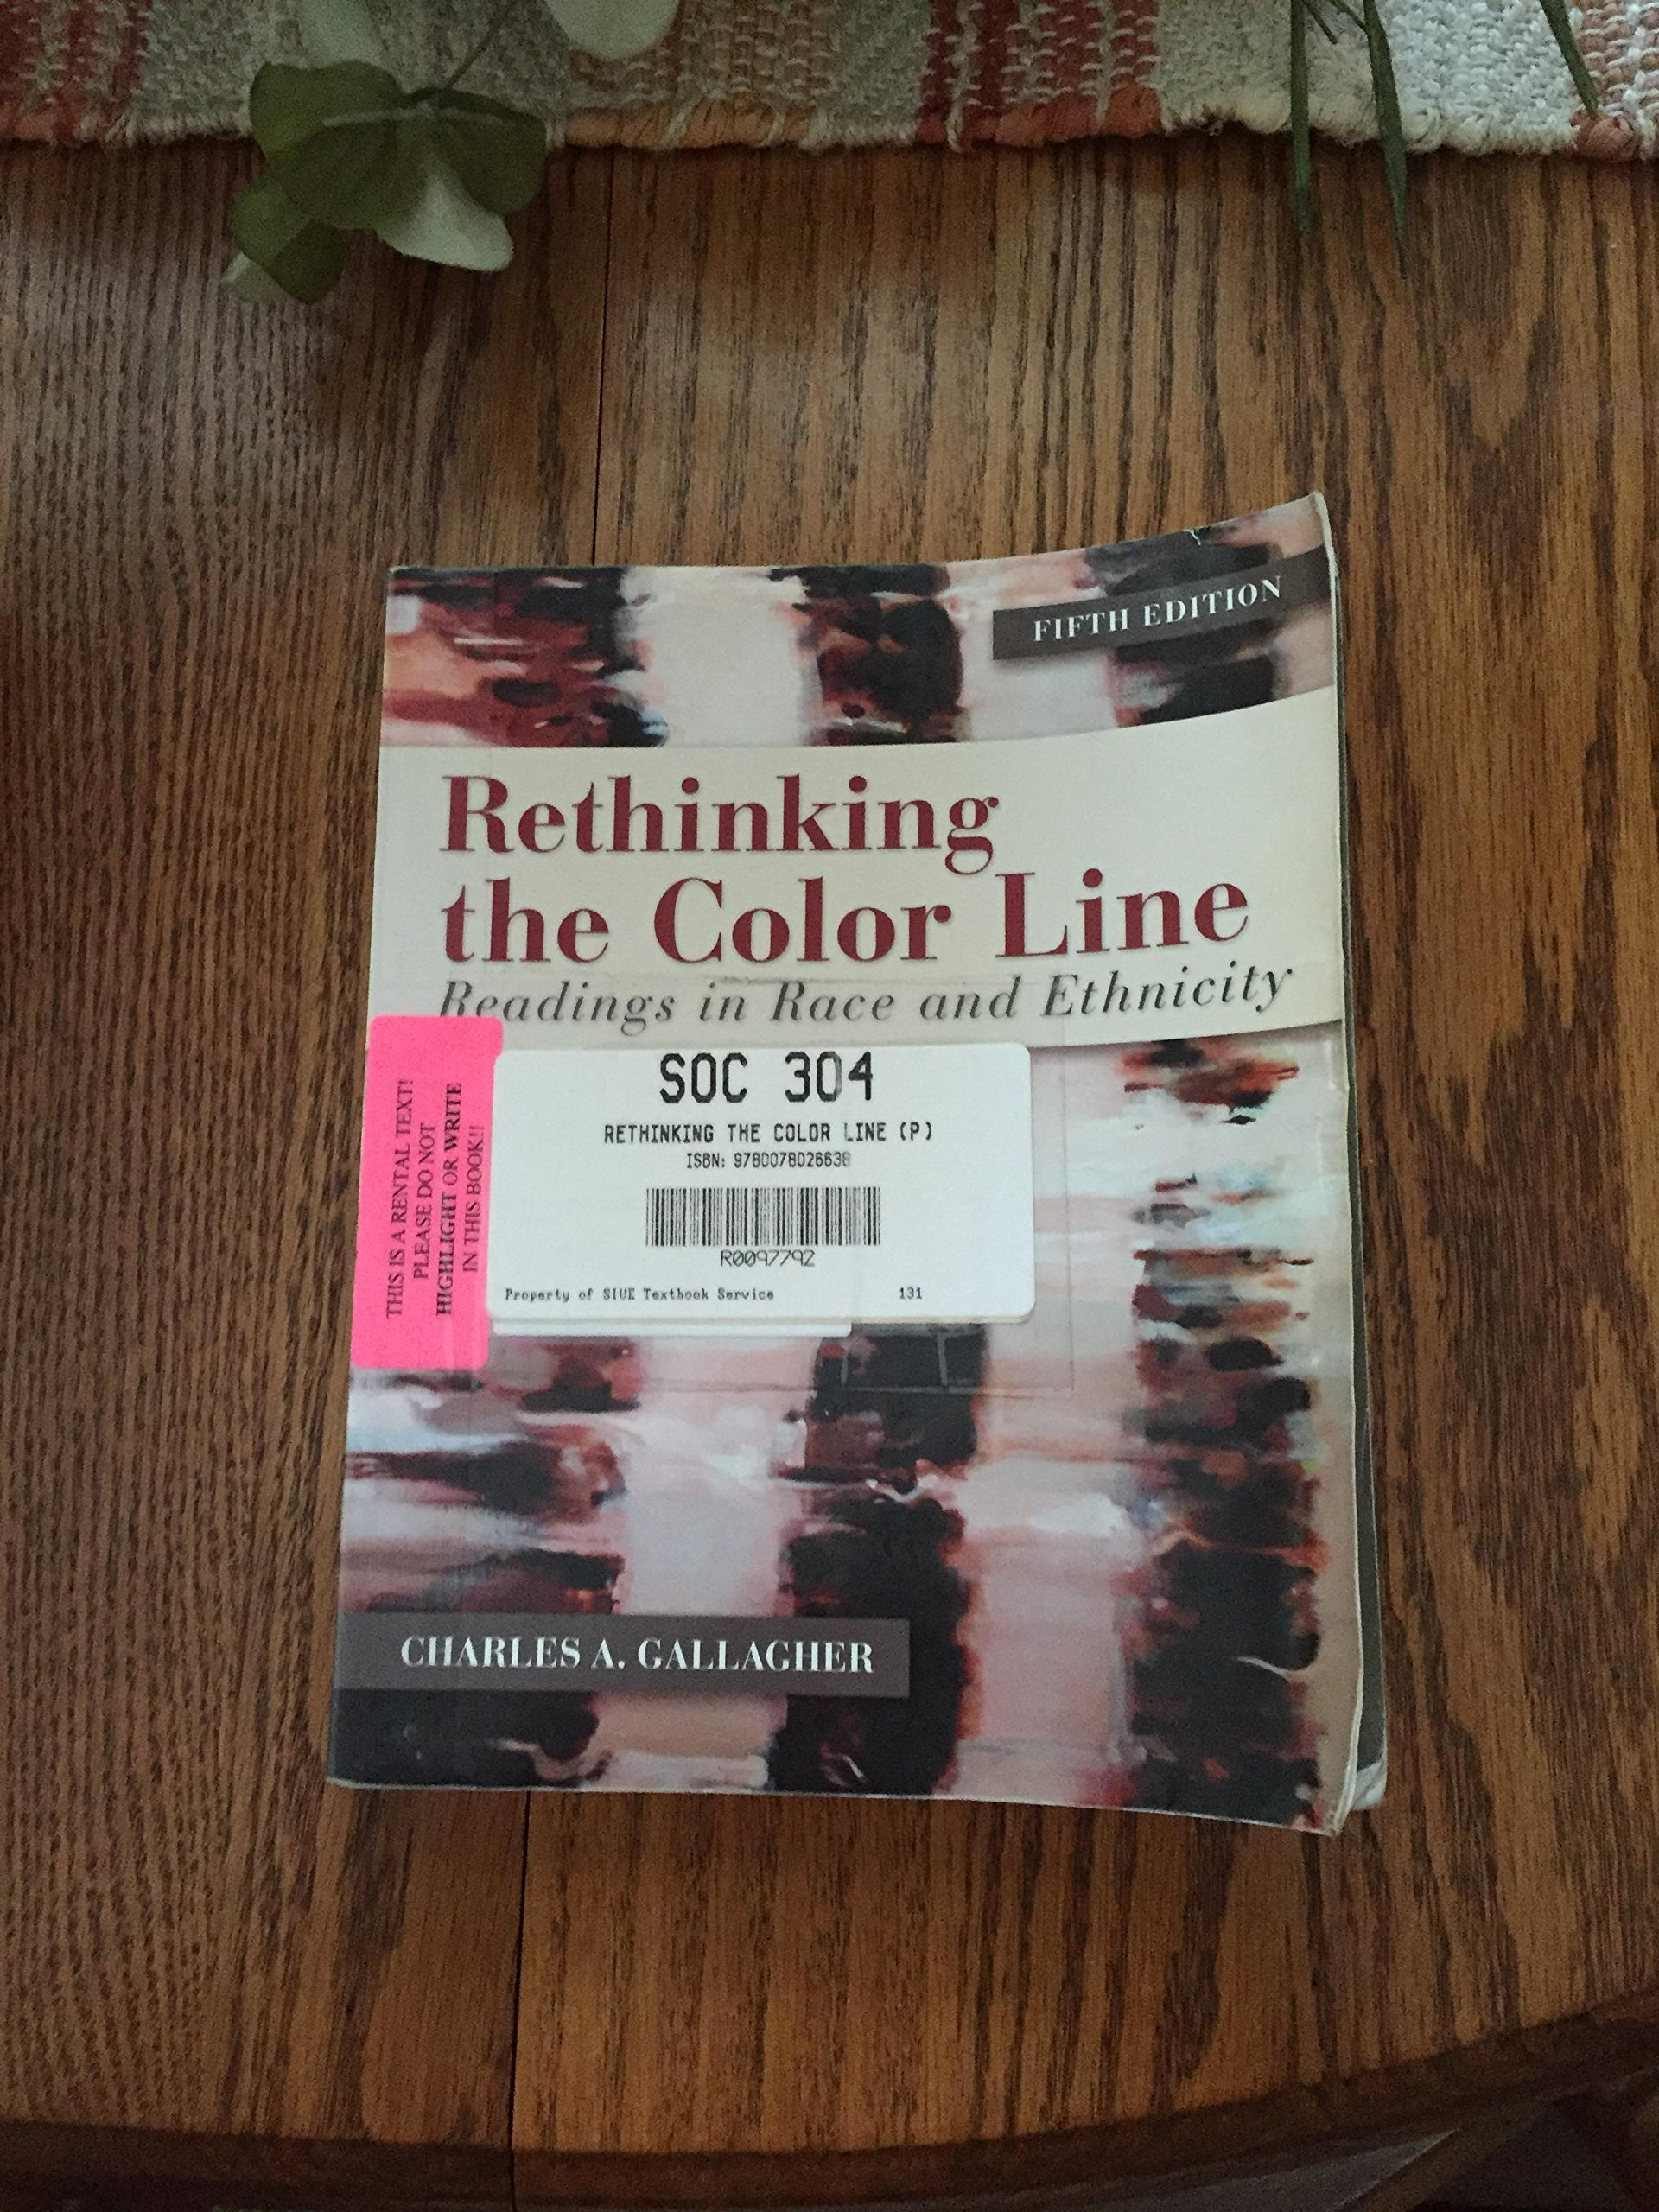 Download Rethinking the Color Line: Readings in Race and Ethnicity 5th (fifth) Edition by Gallagher, Charles A. [2011] pdf